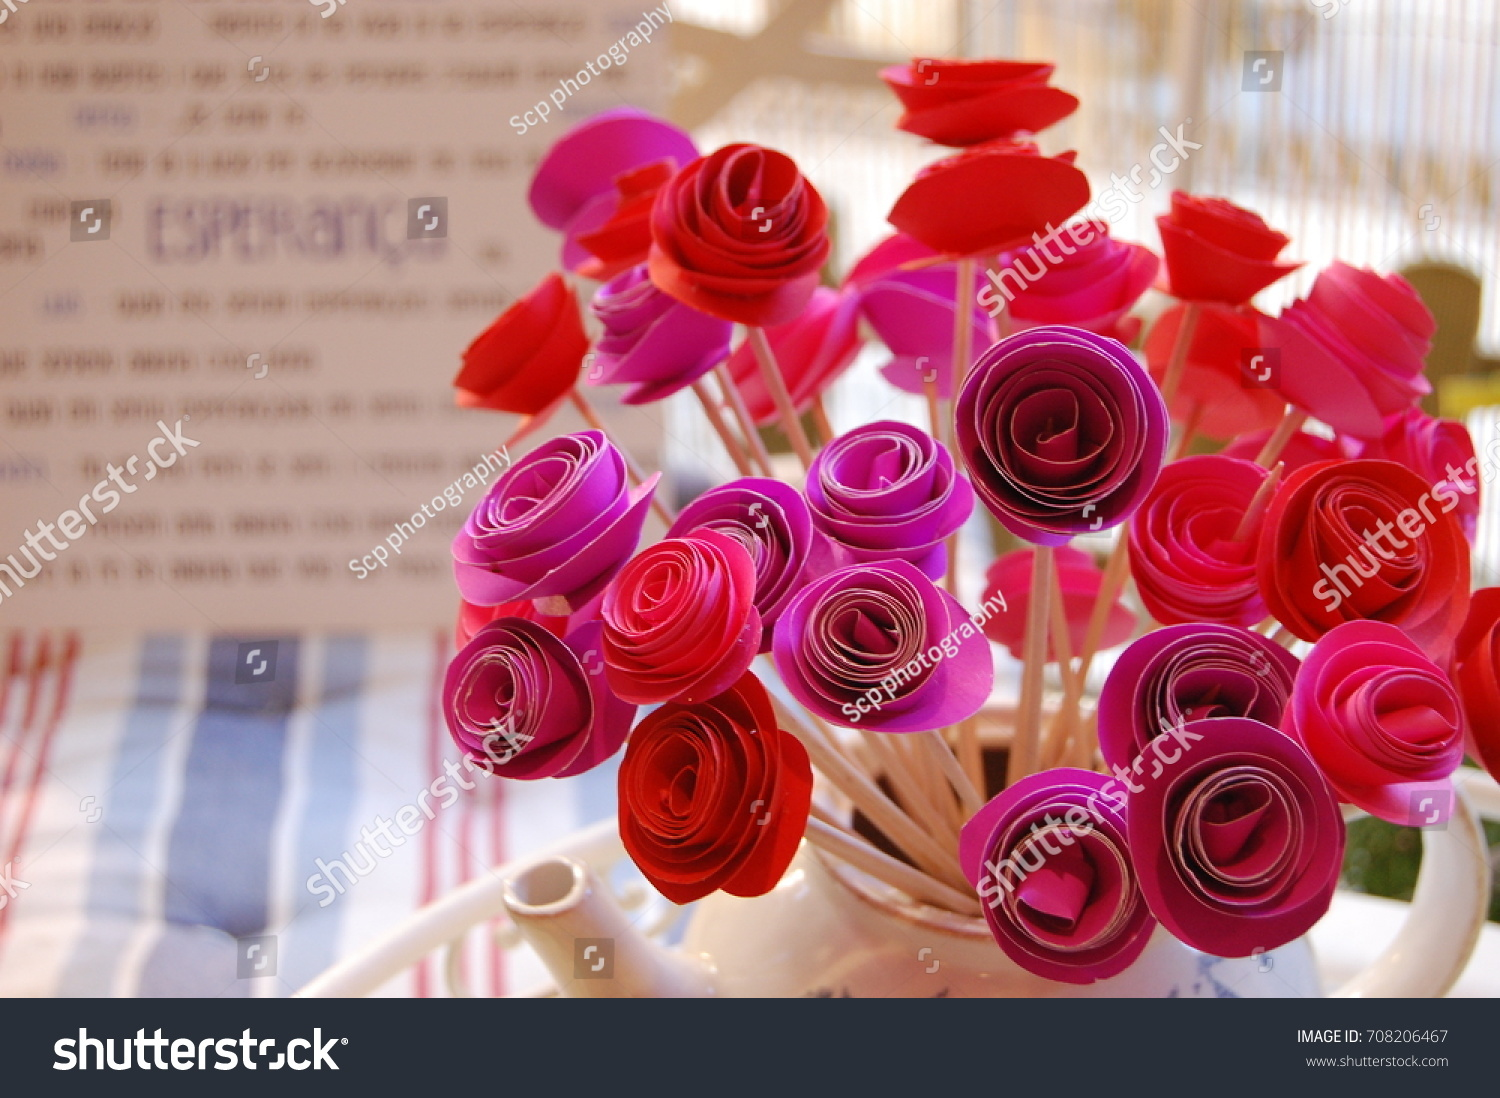 Red Pink Rolled Paper Flowers Rose Stock Photo Edit Now 708206467